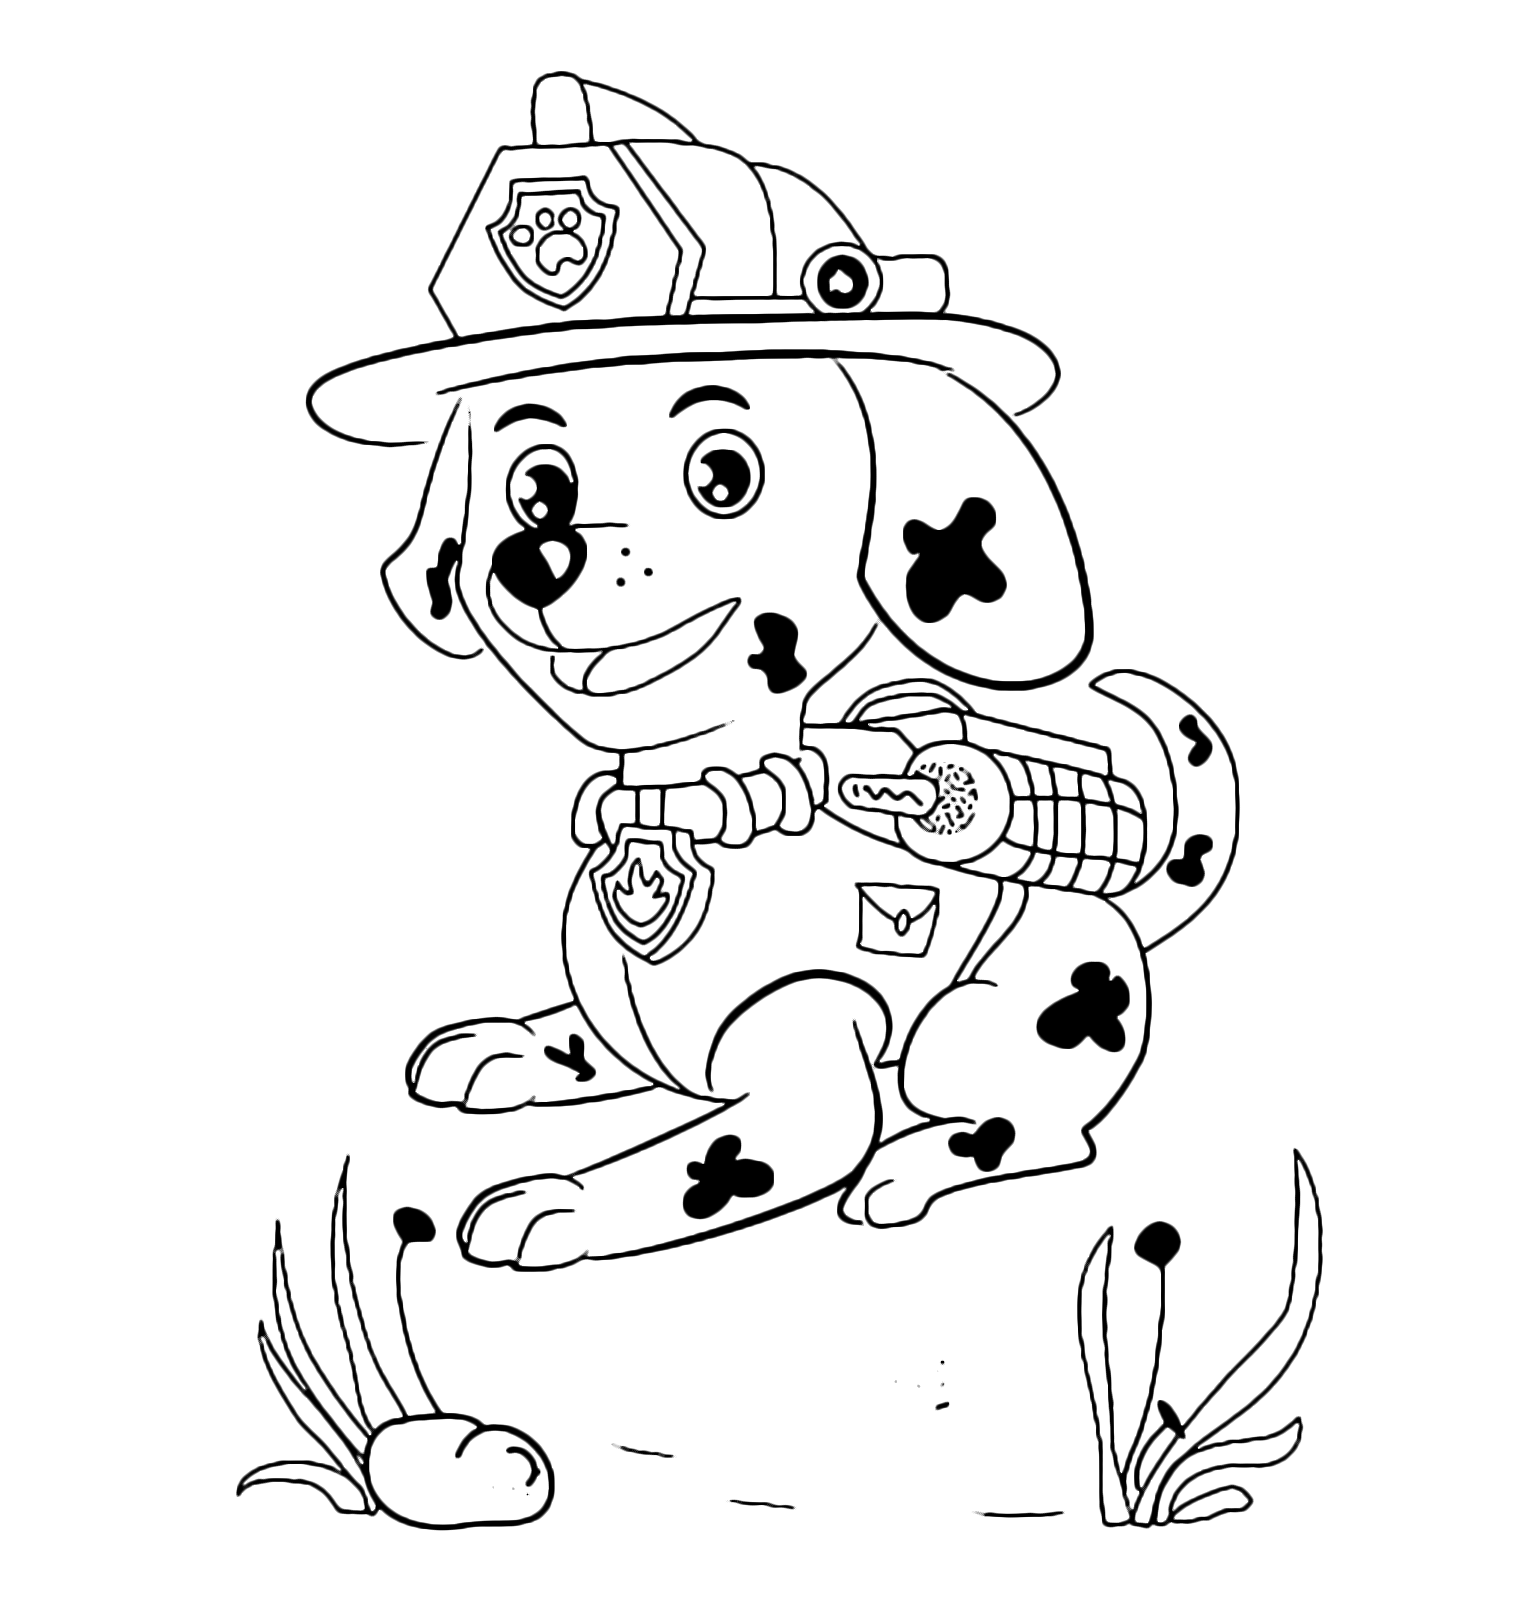 mission paw coloring pages 50 great mission paw coloring pages cool wallpaper paw mission coloring pages